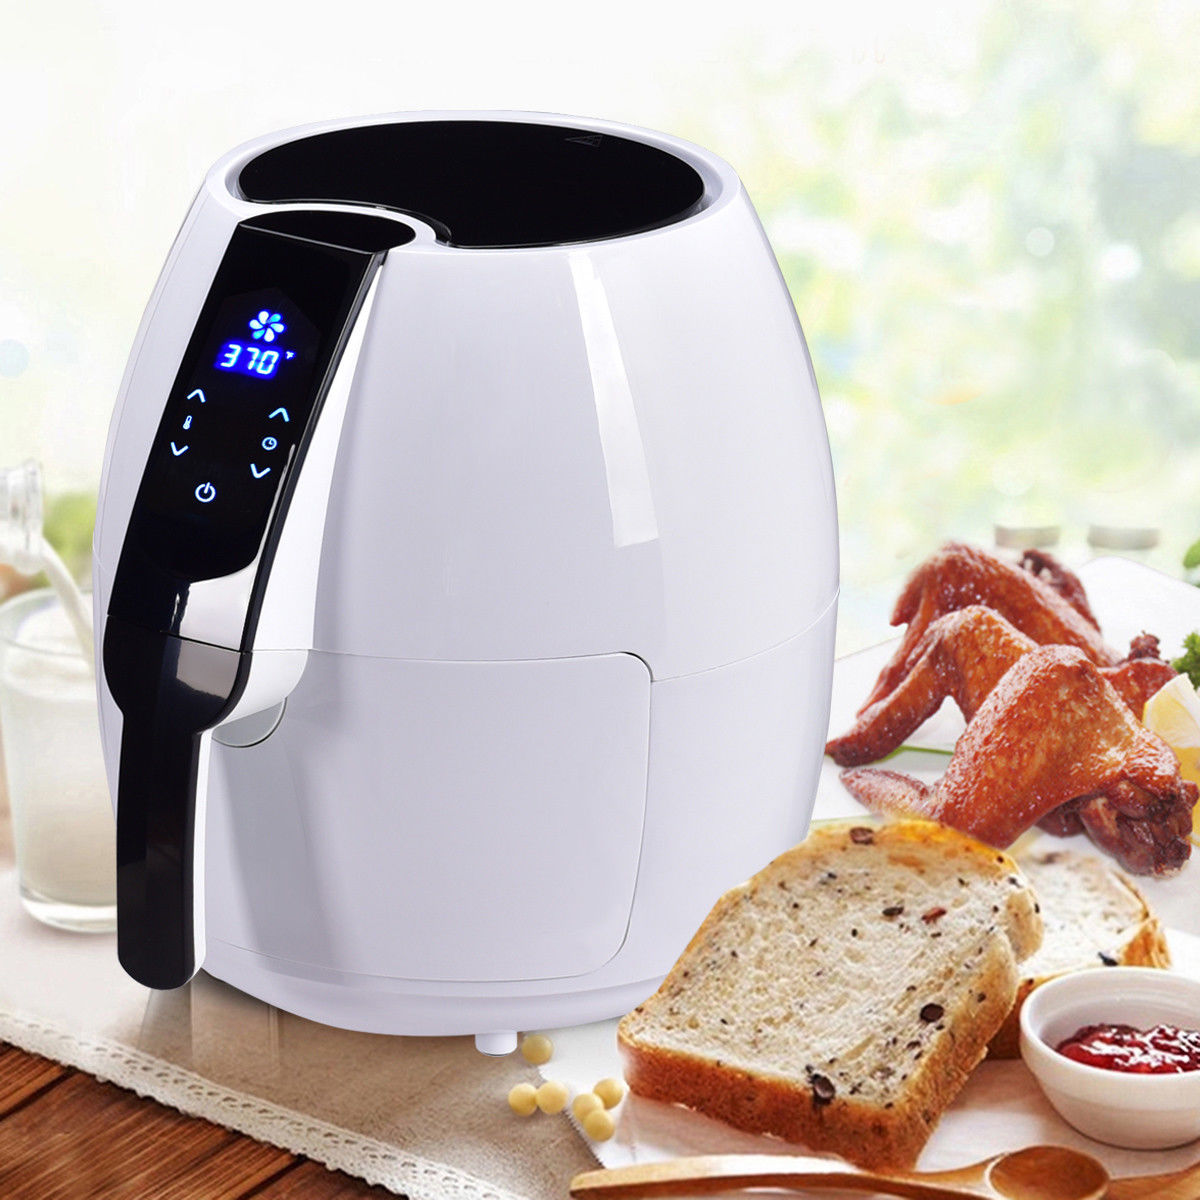 Costway 1500W Electric Air Fryer 4.8 Quart Touch LCD Screen Timer Temperature Control